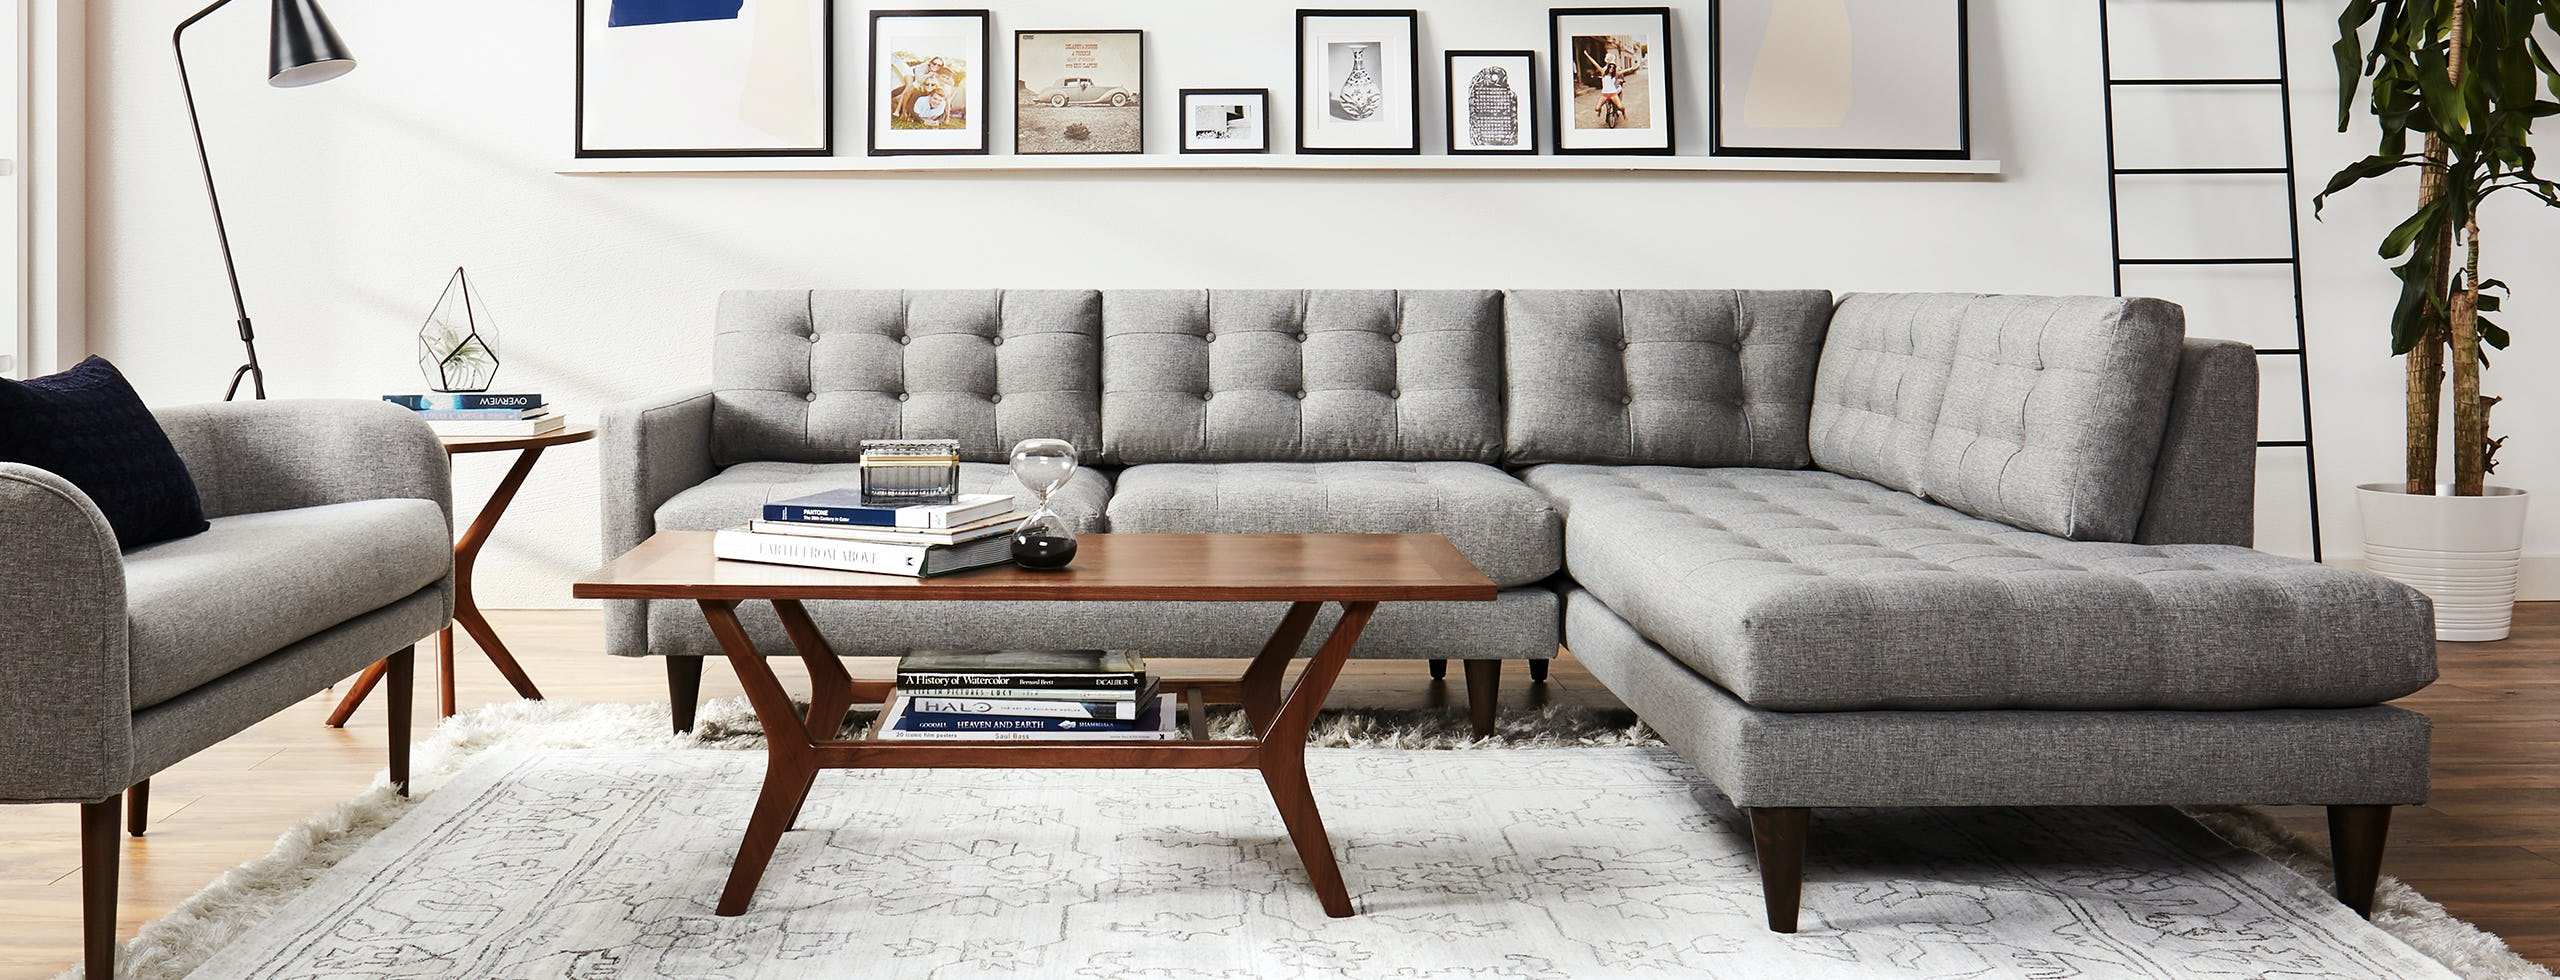 Eliot-Bumper-Sectional-Taylor-Felt-Grey-T2-015